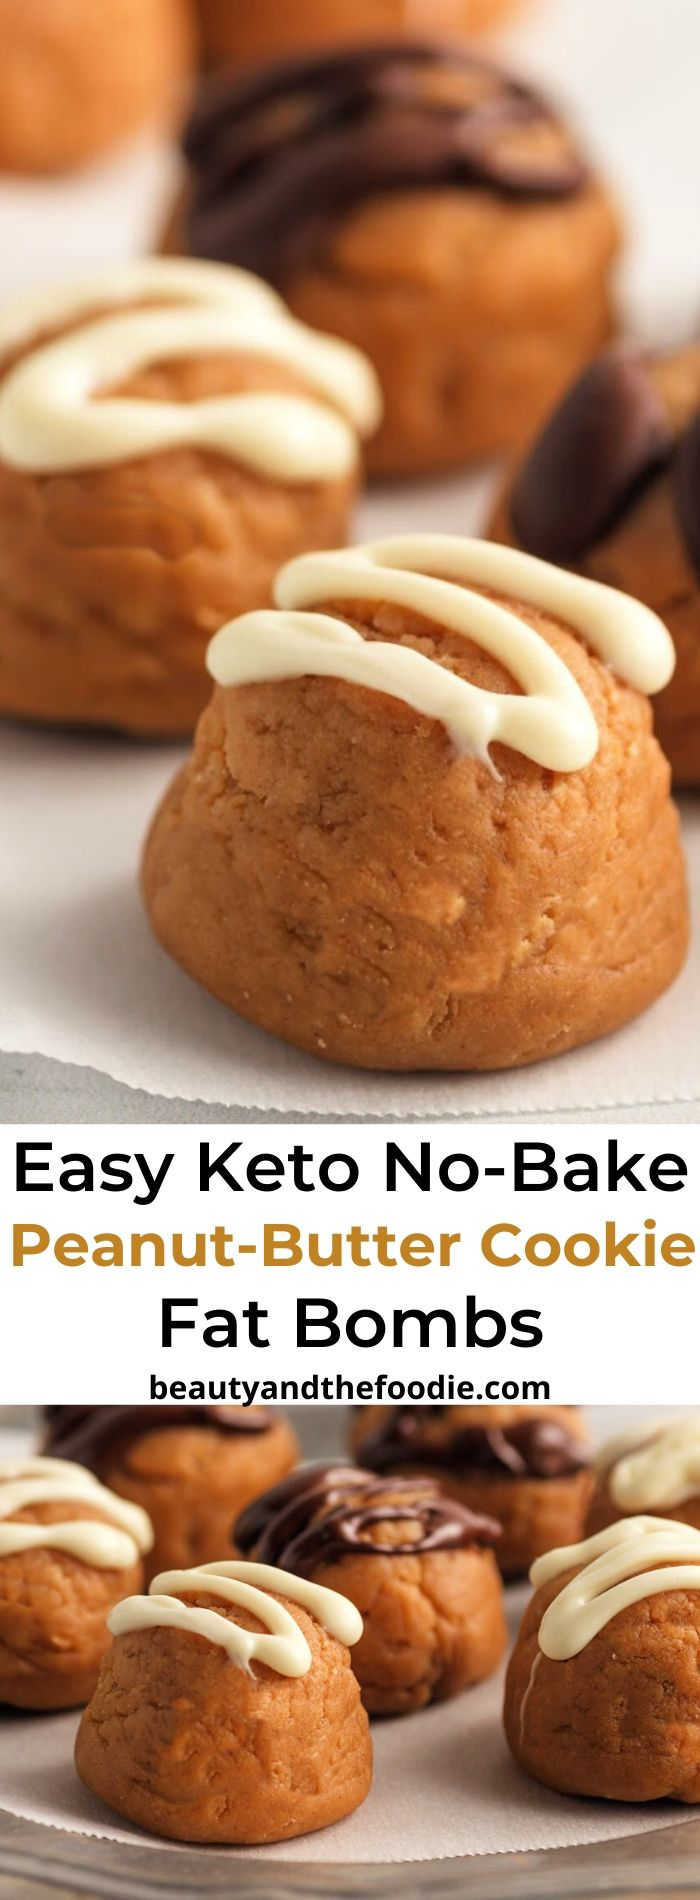 Keto Peanut Butter Cookie Fat Bombs- Easy & Fast